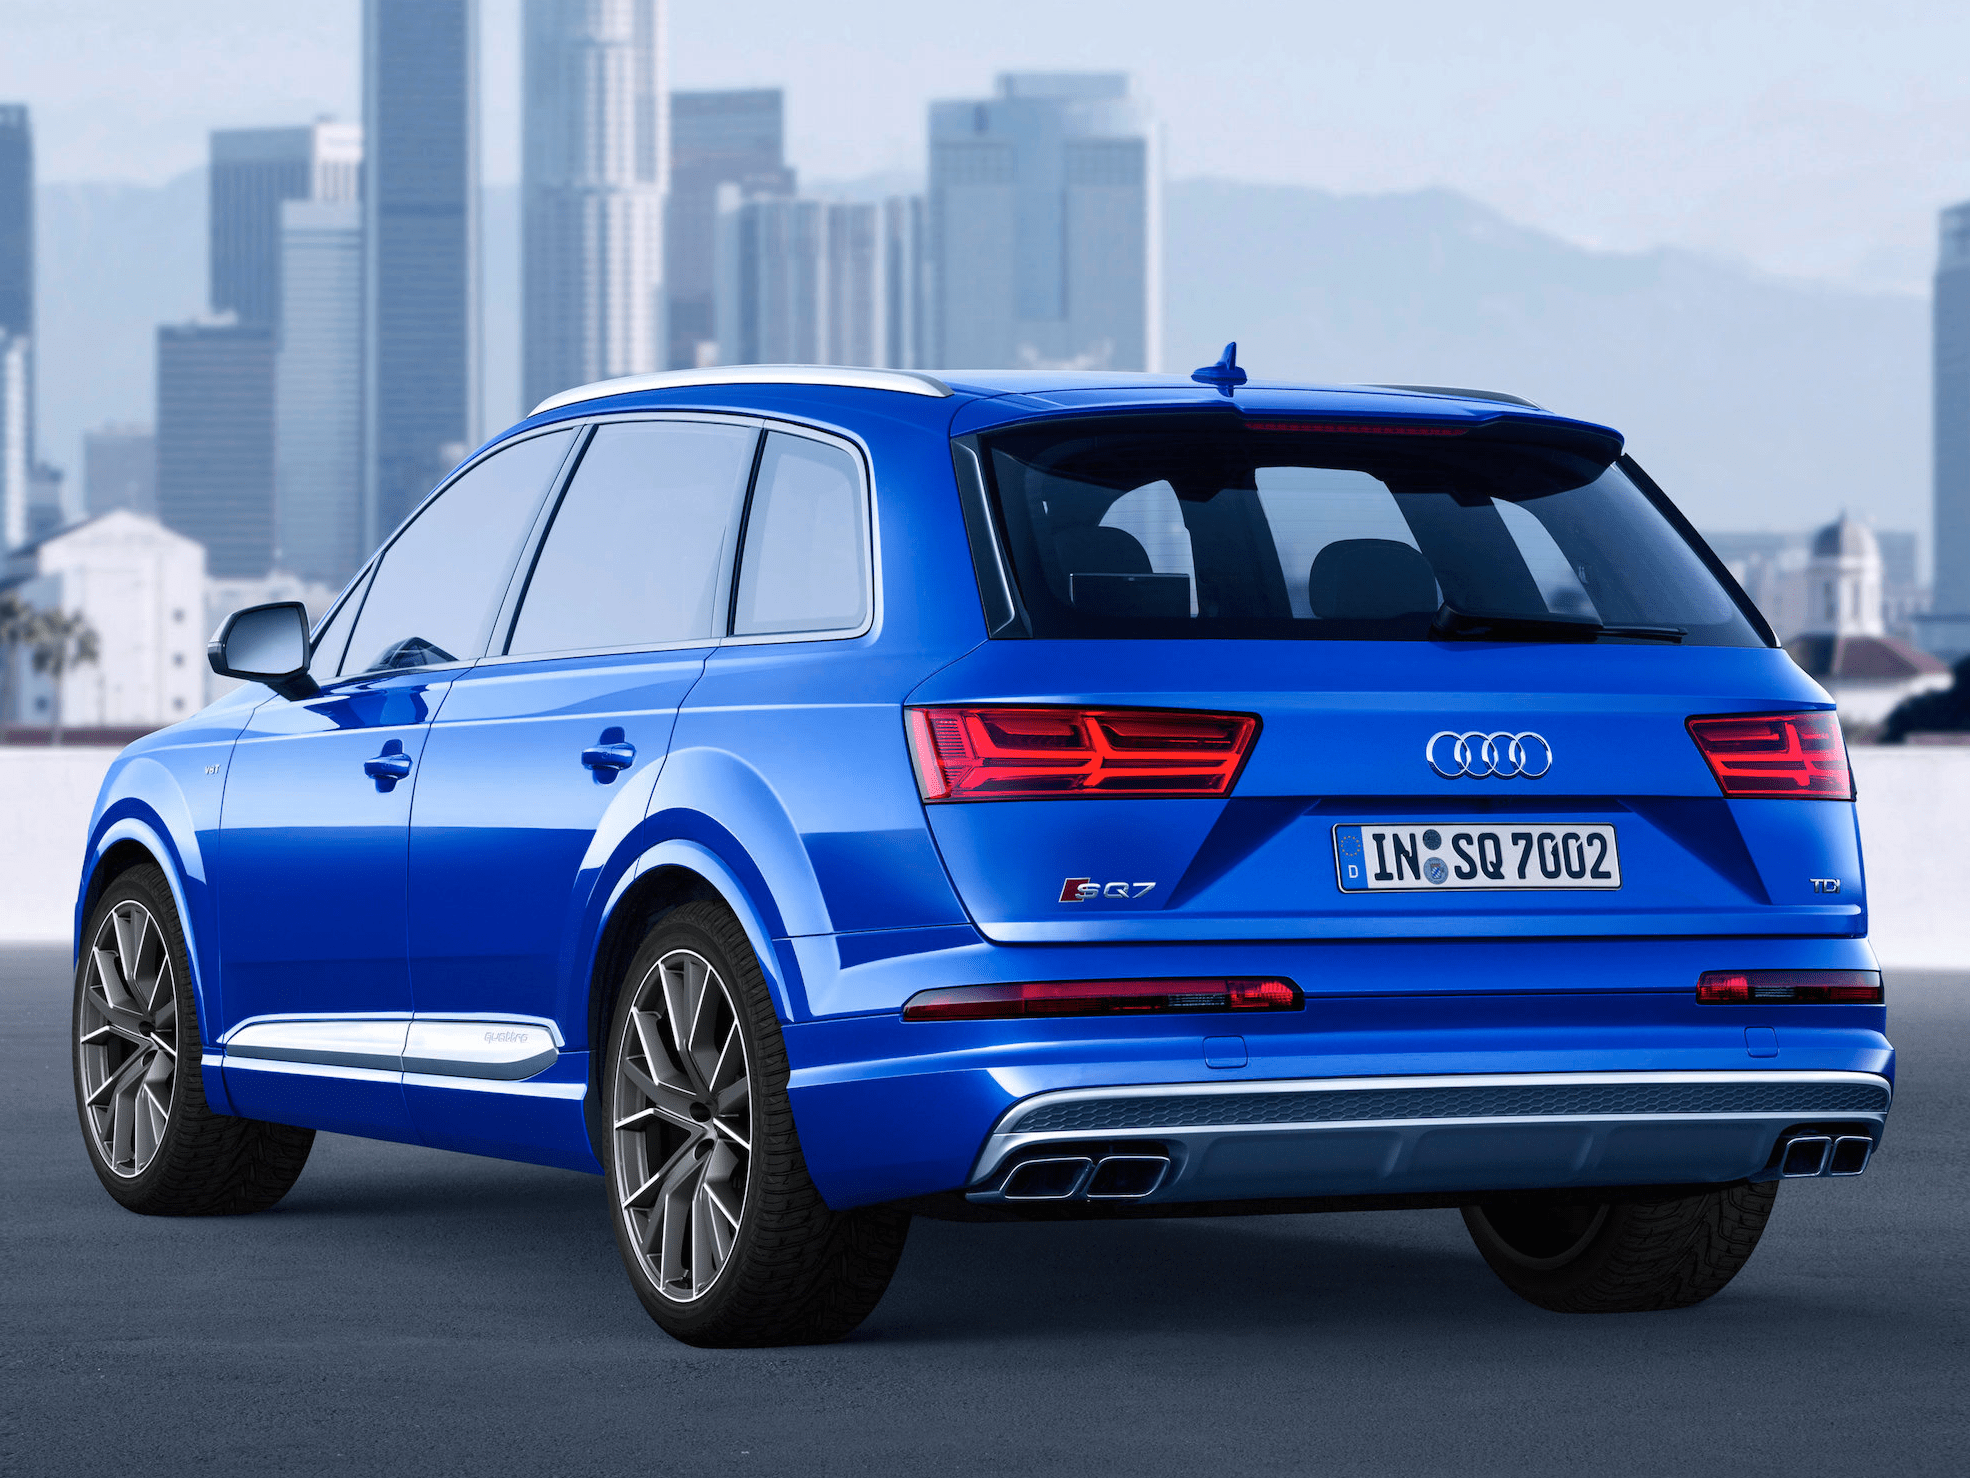 Audi has unleashed a new monster diesel SUV | Business Insider